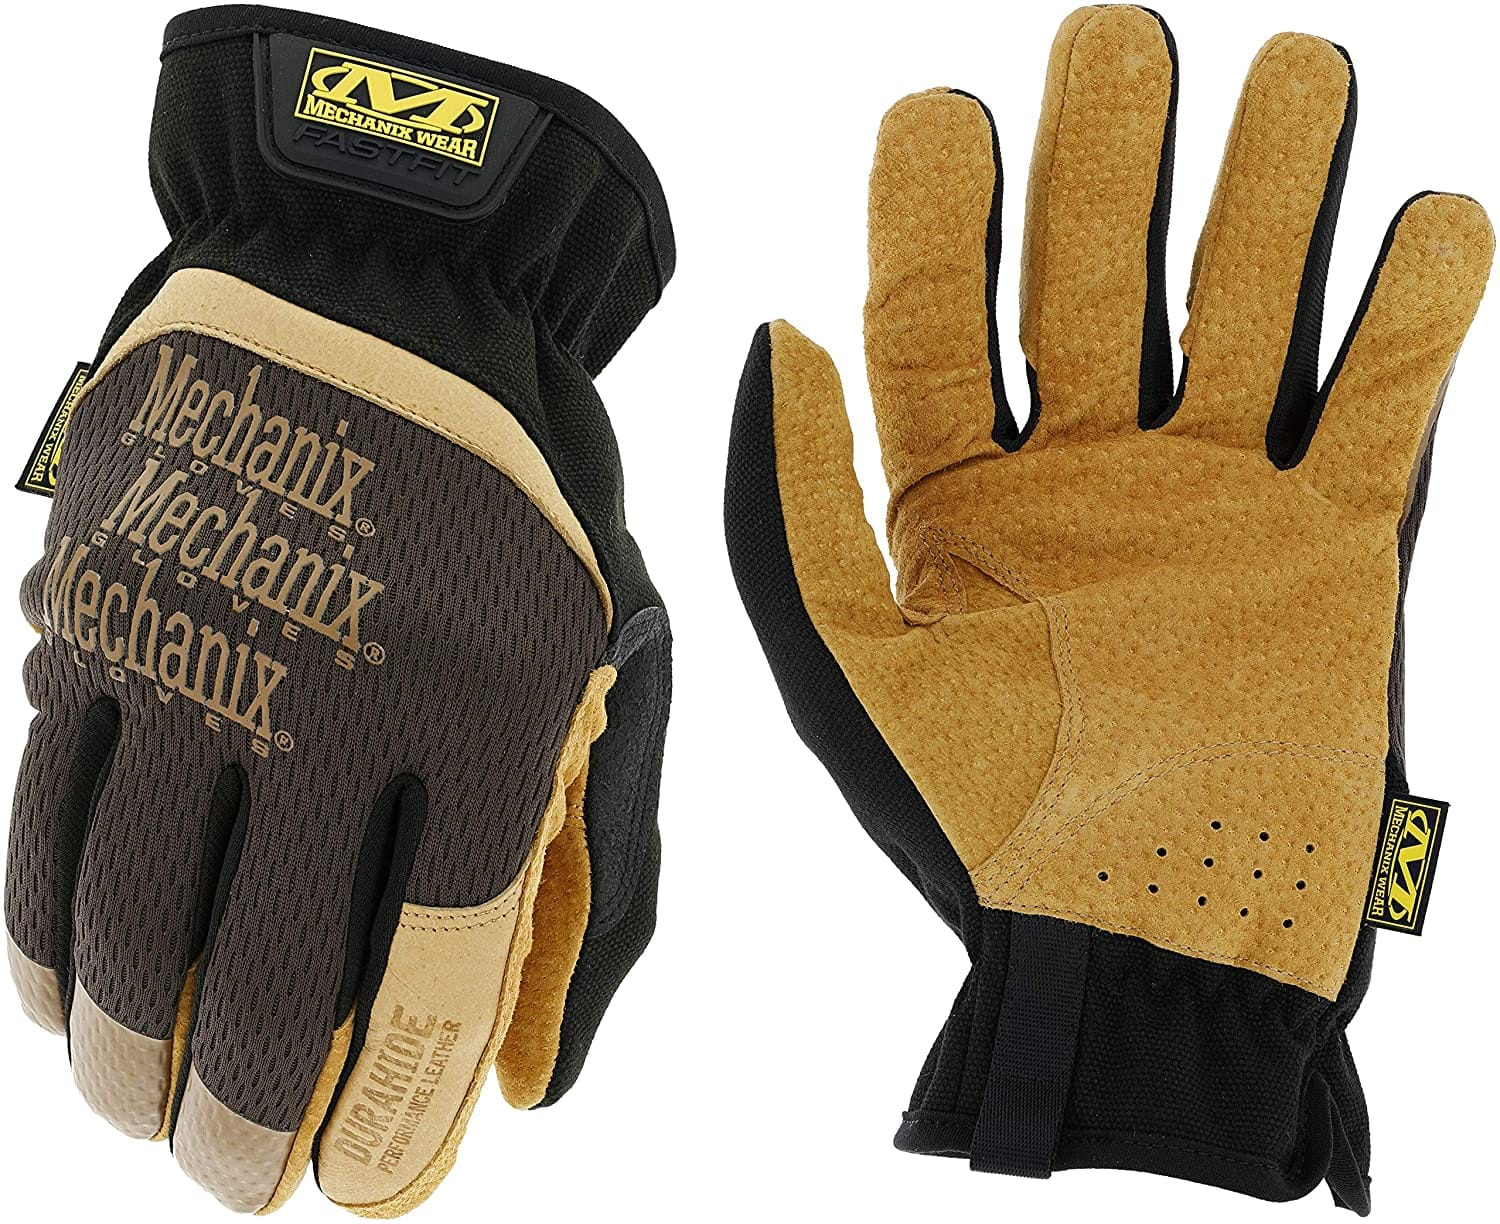 Mechanix Durahide Fast Fit Leather Work Gloves Large Size on Amazon for $9.84